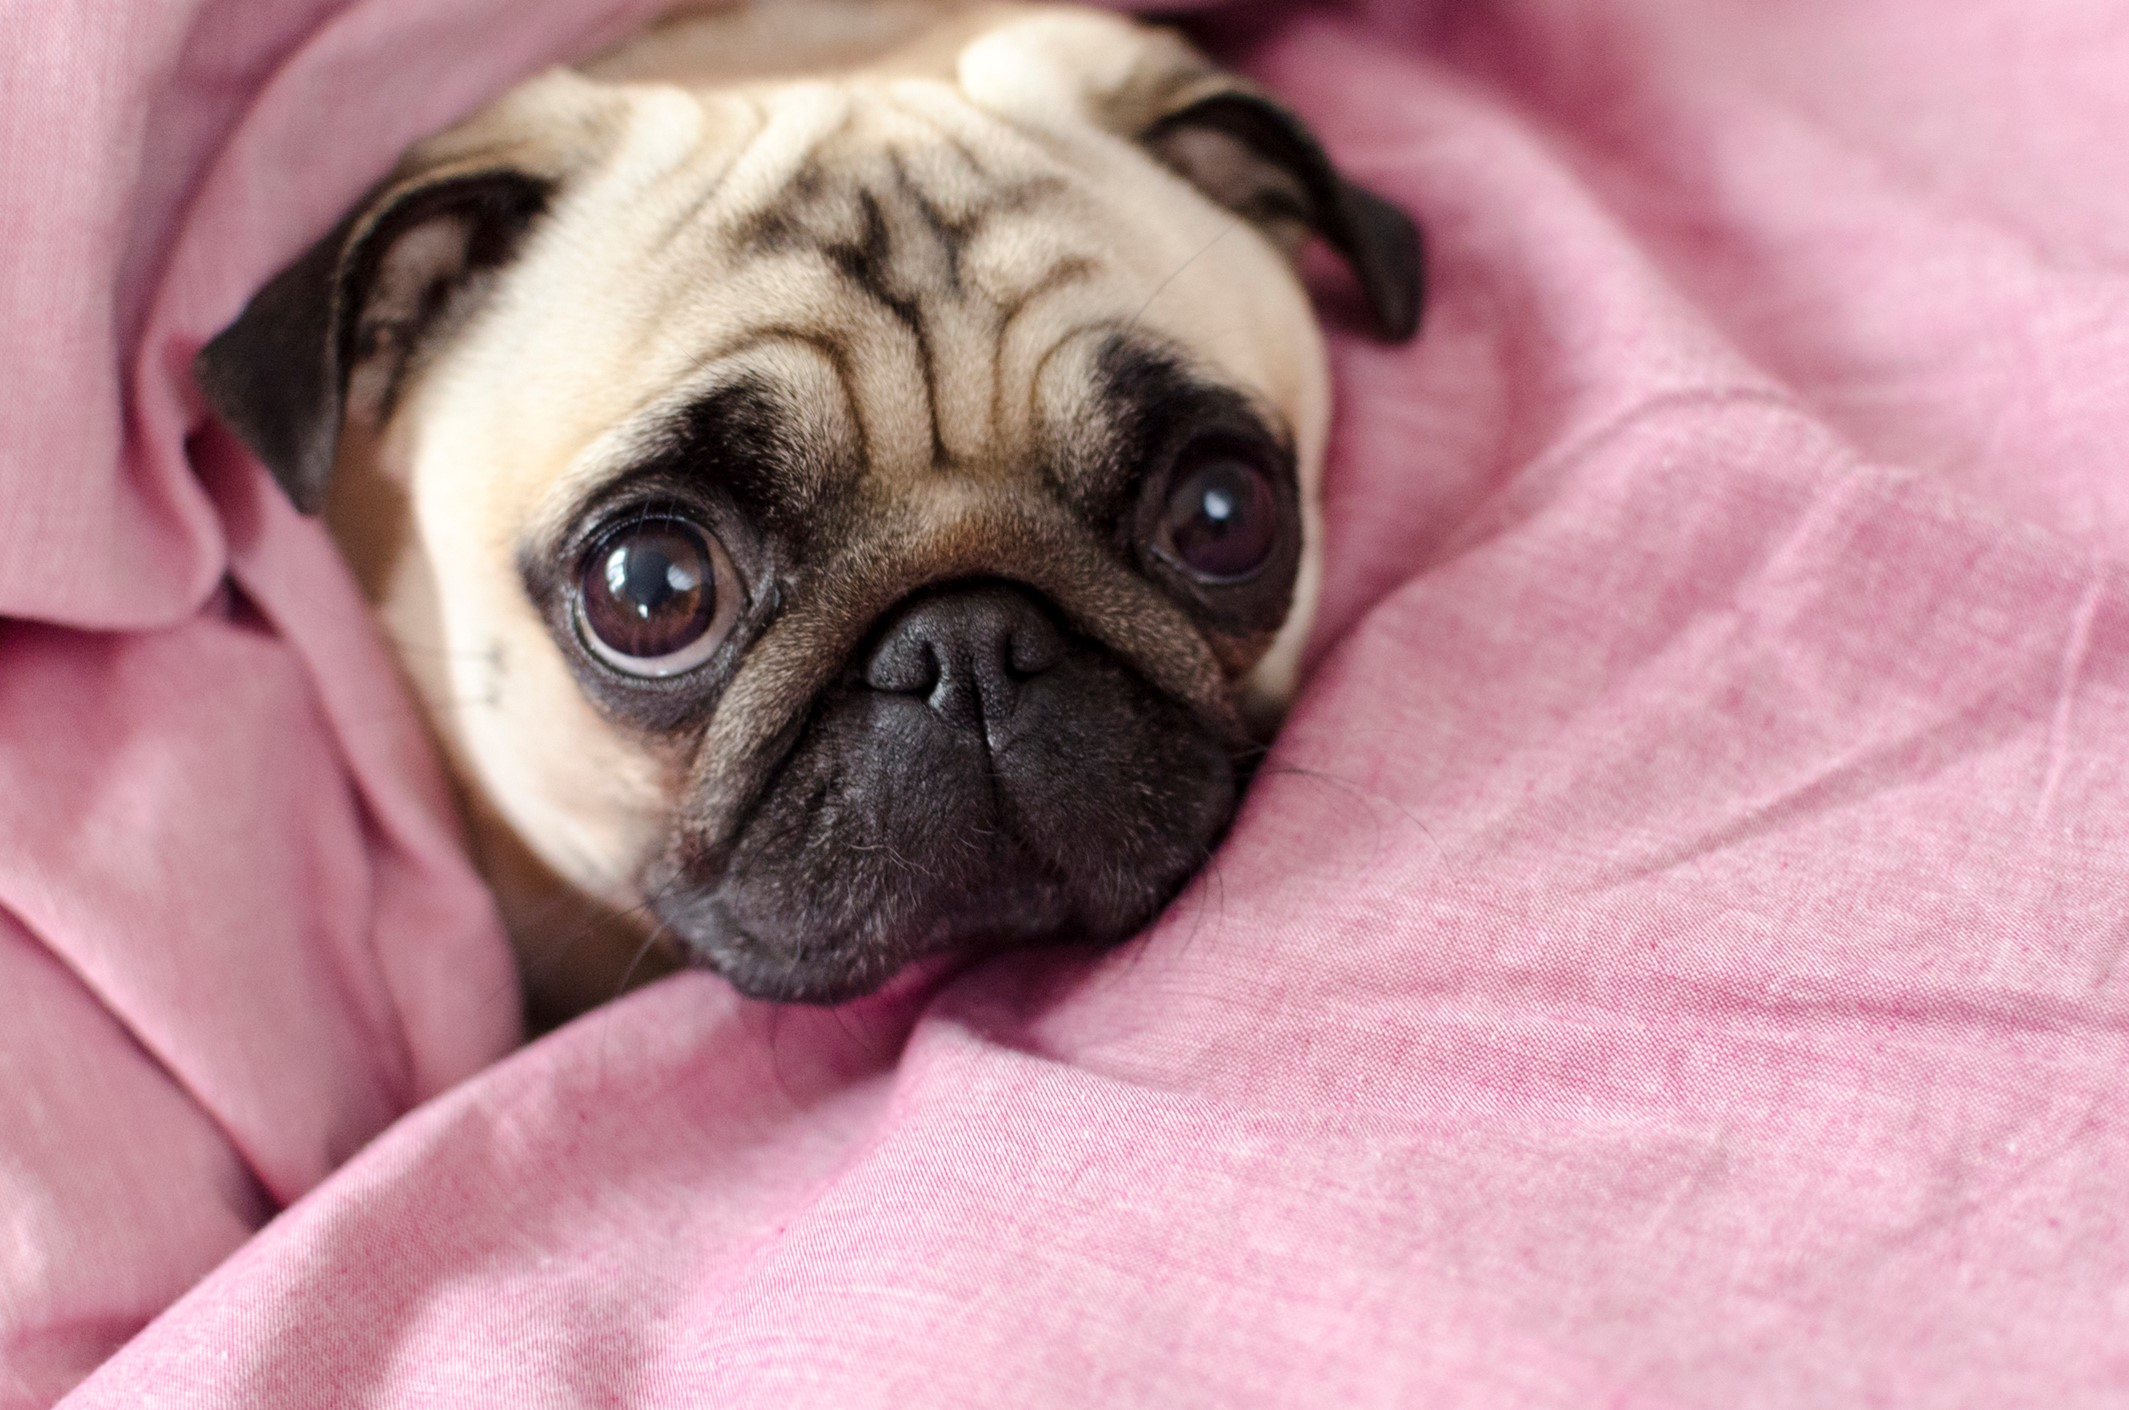 A Pug wrapped in a pink blanket